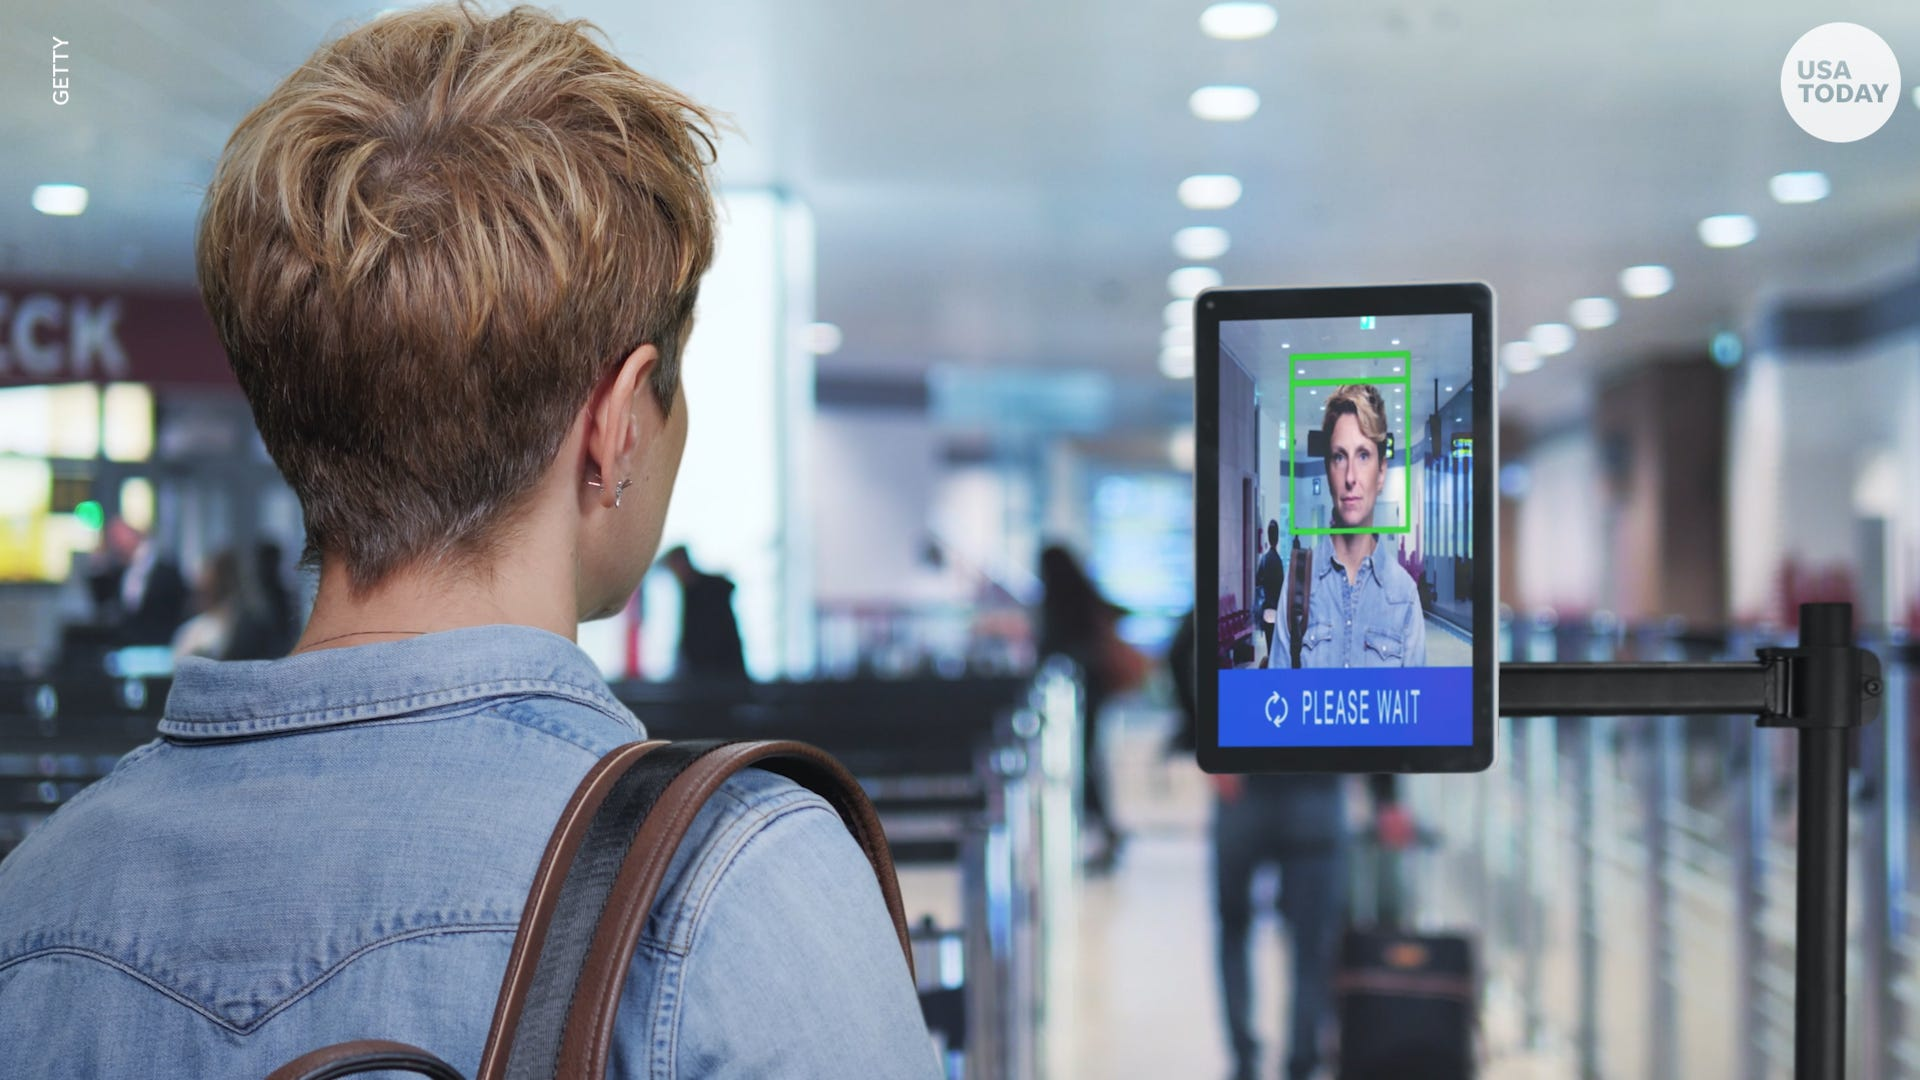 Airports are investing in contactless technologies to emphasize clean and safe travel